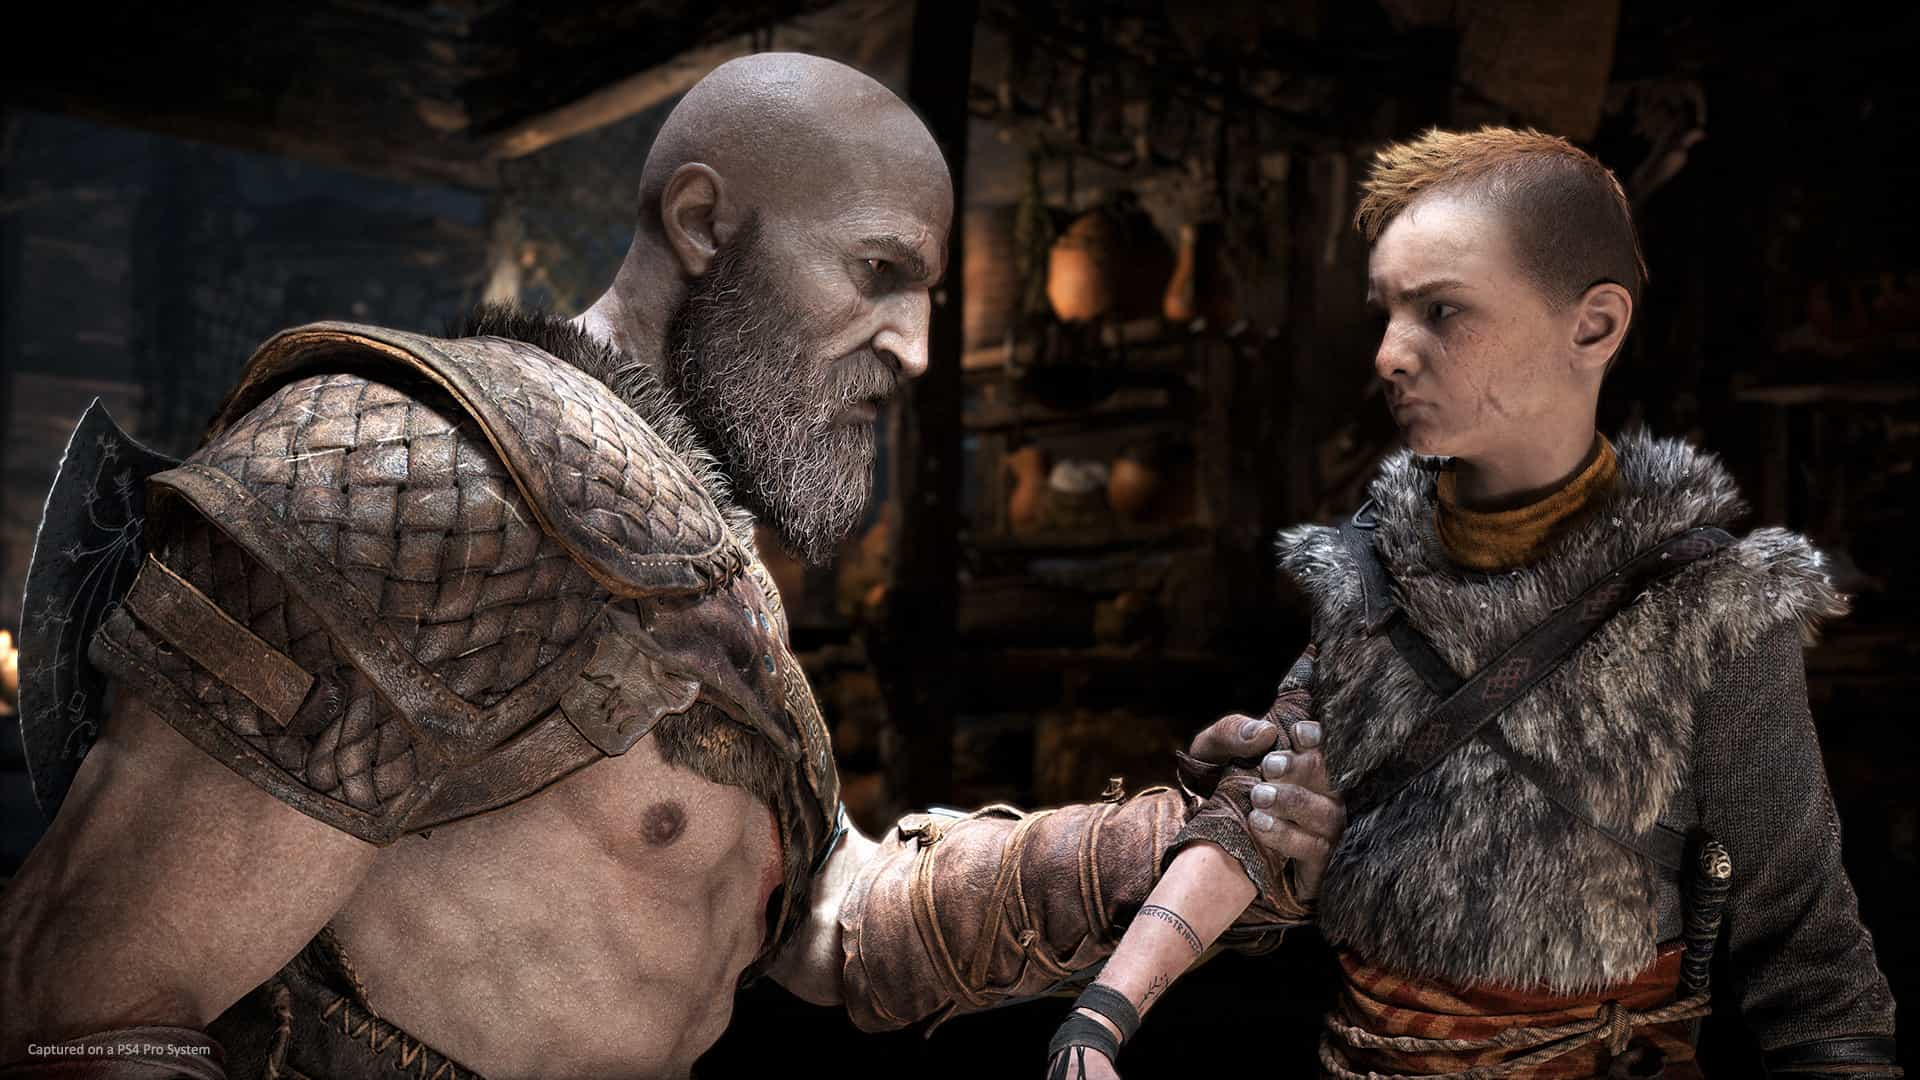 Novo vídeo de God of War destaca o sistema de progressão